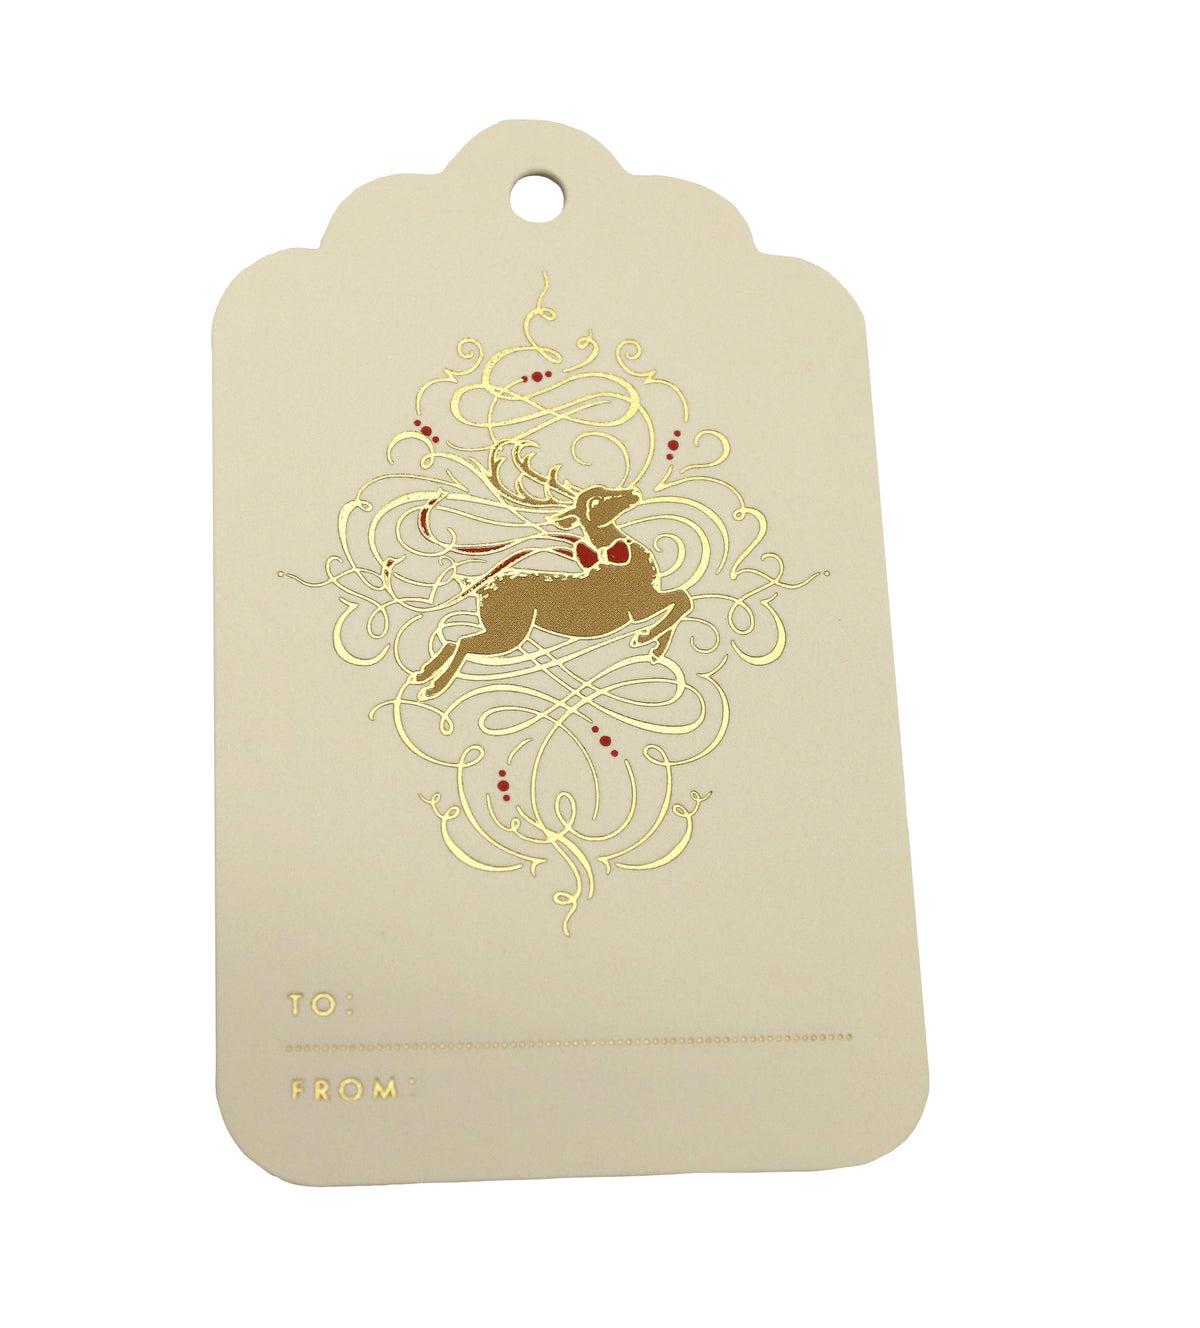 Crane - Leaping Reindeer Gift Tags, Set of 6